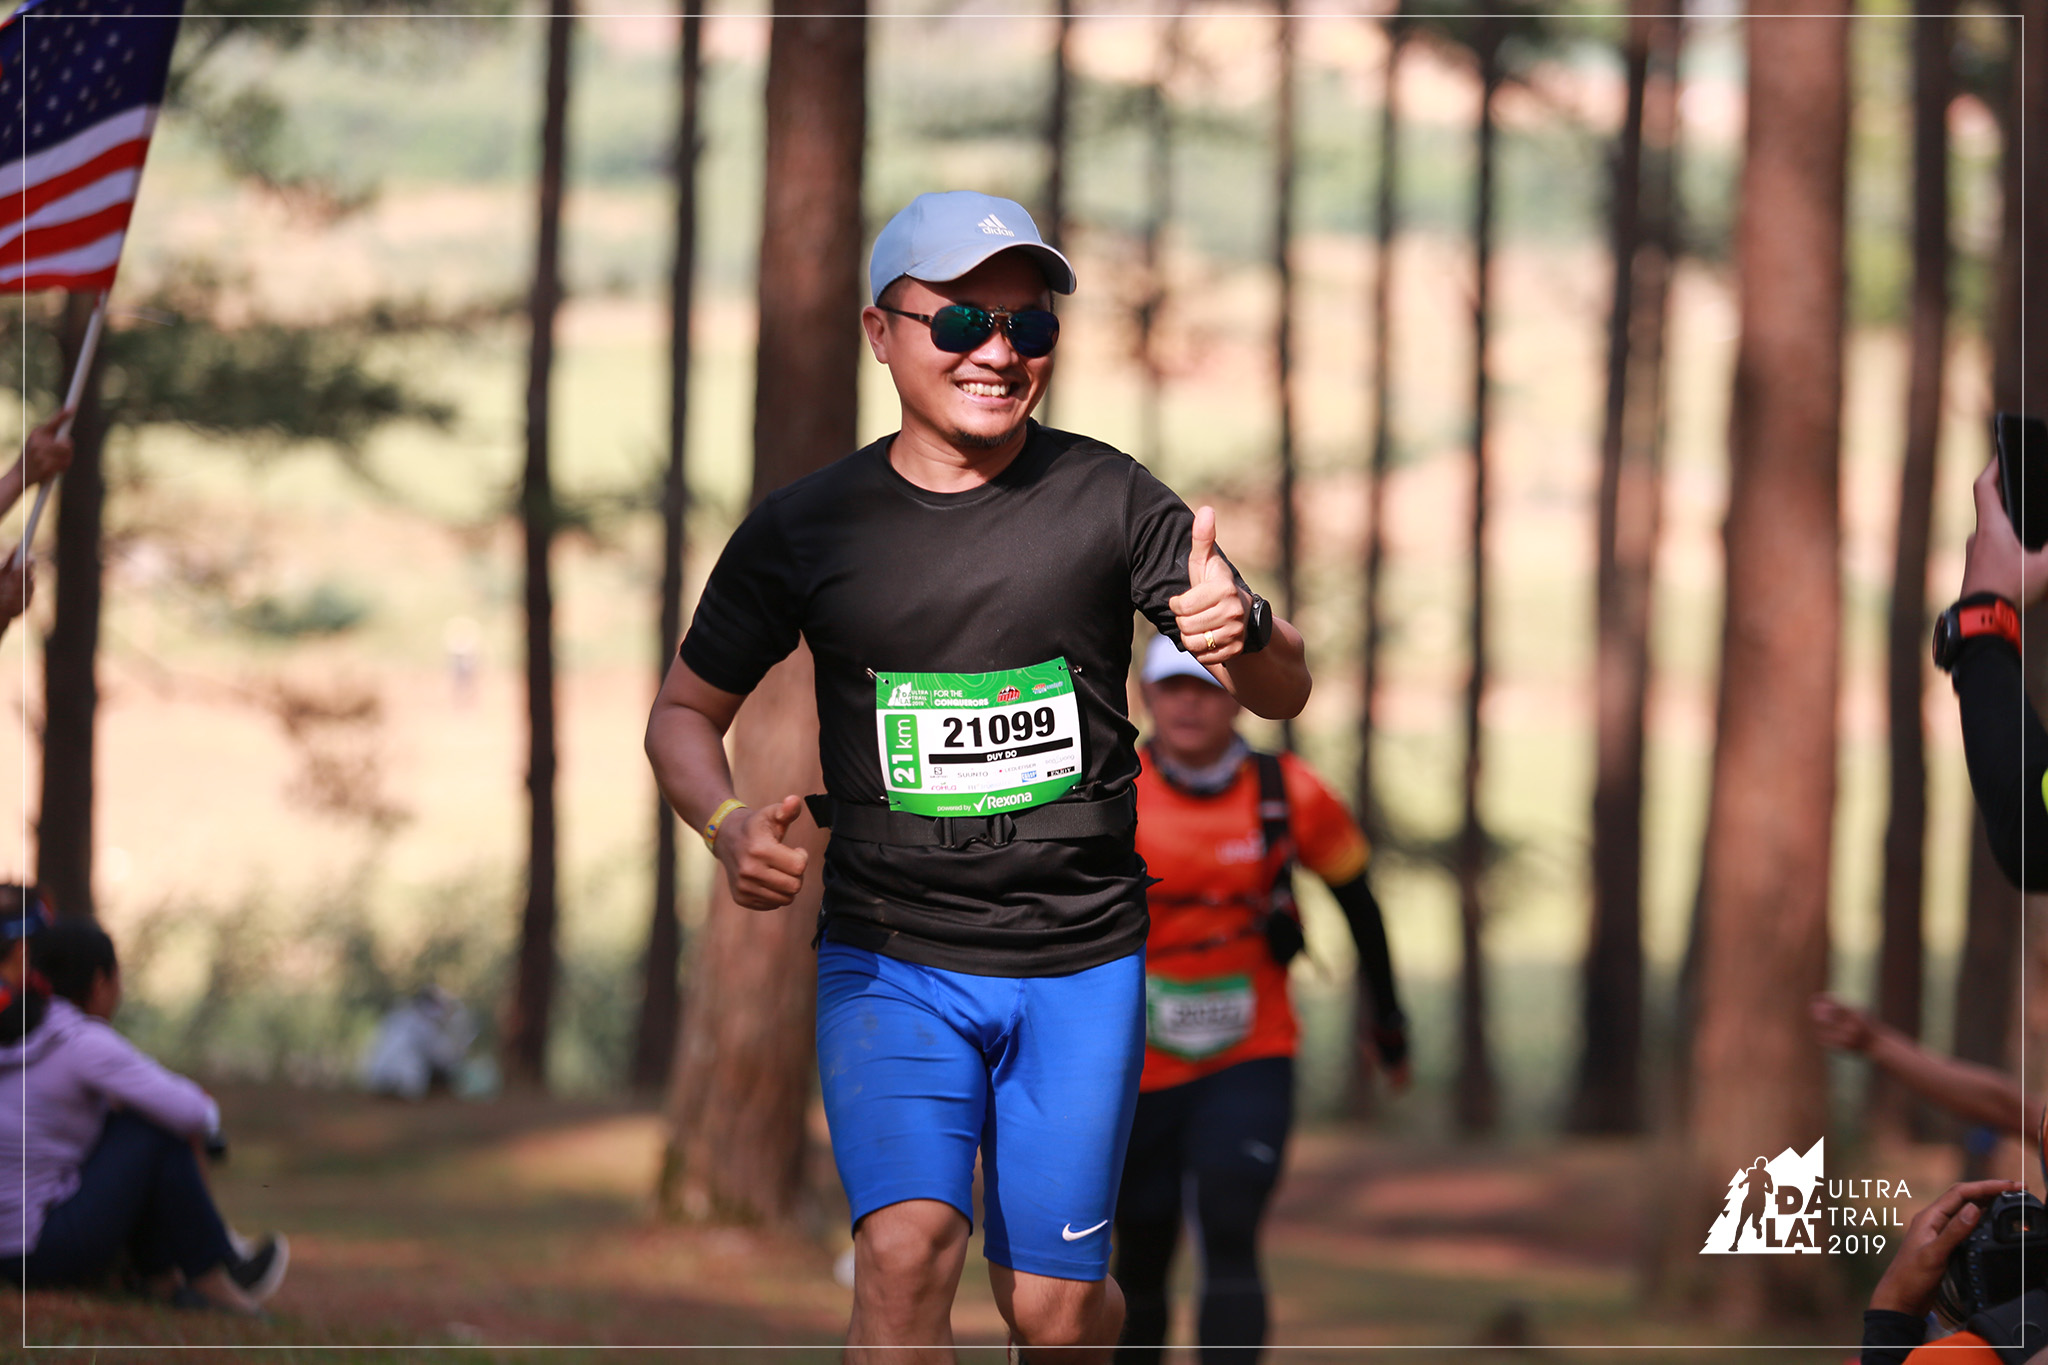 Duy Do conquered his first trail half-marathon at Dalat Ultra Trail 2019.